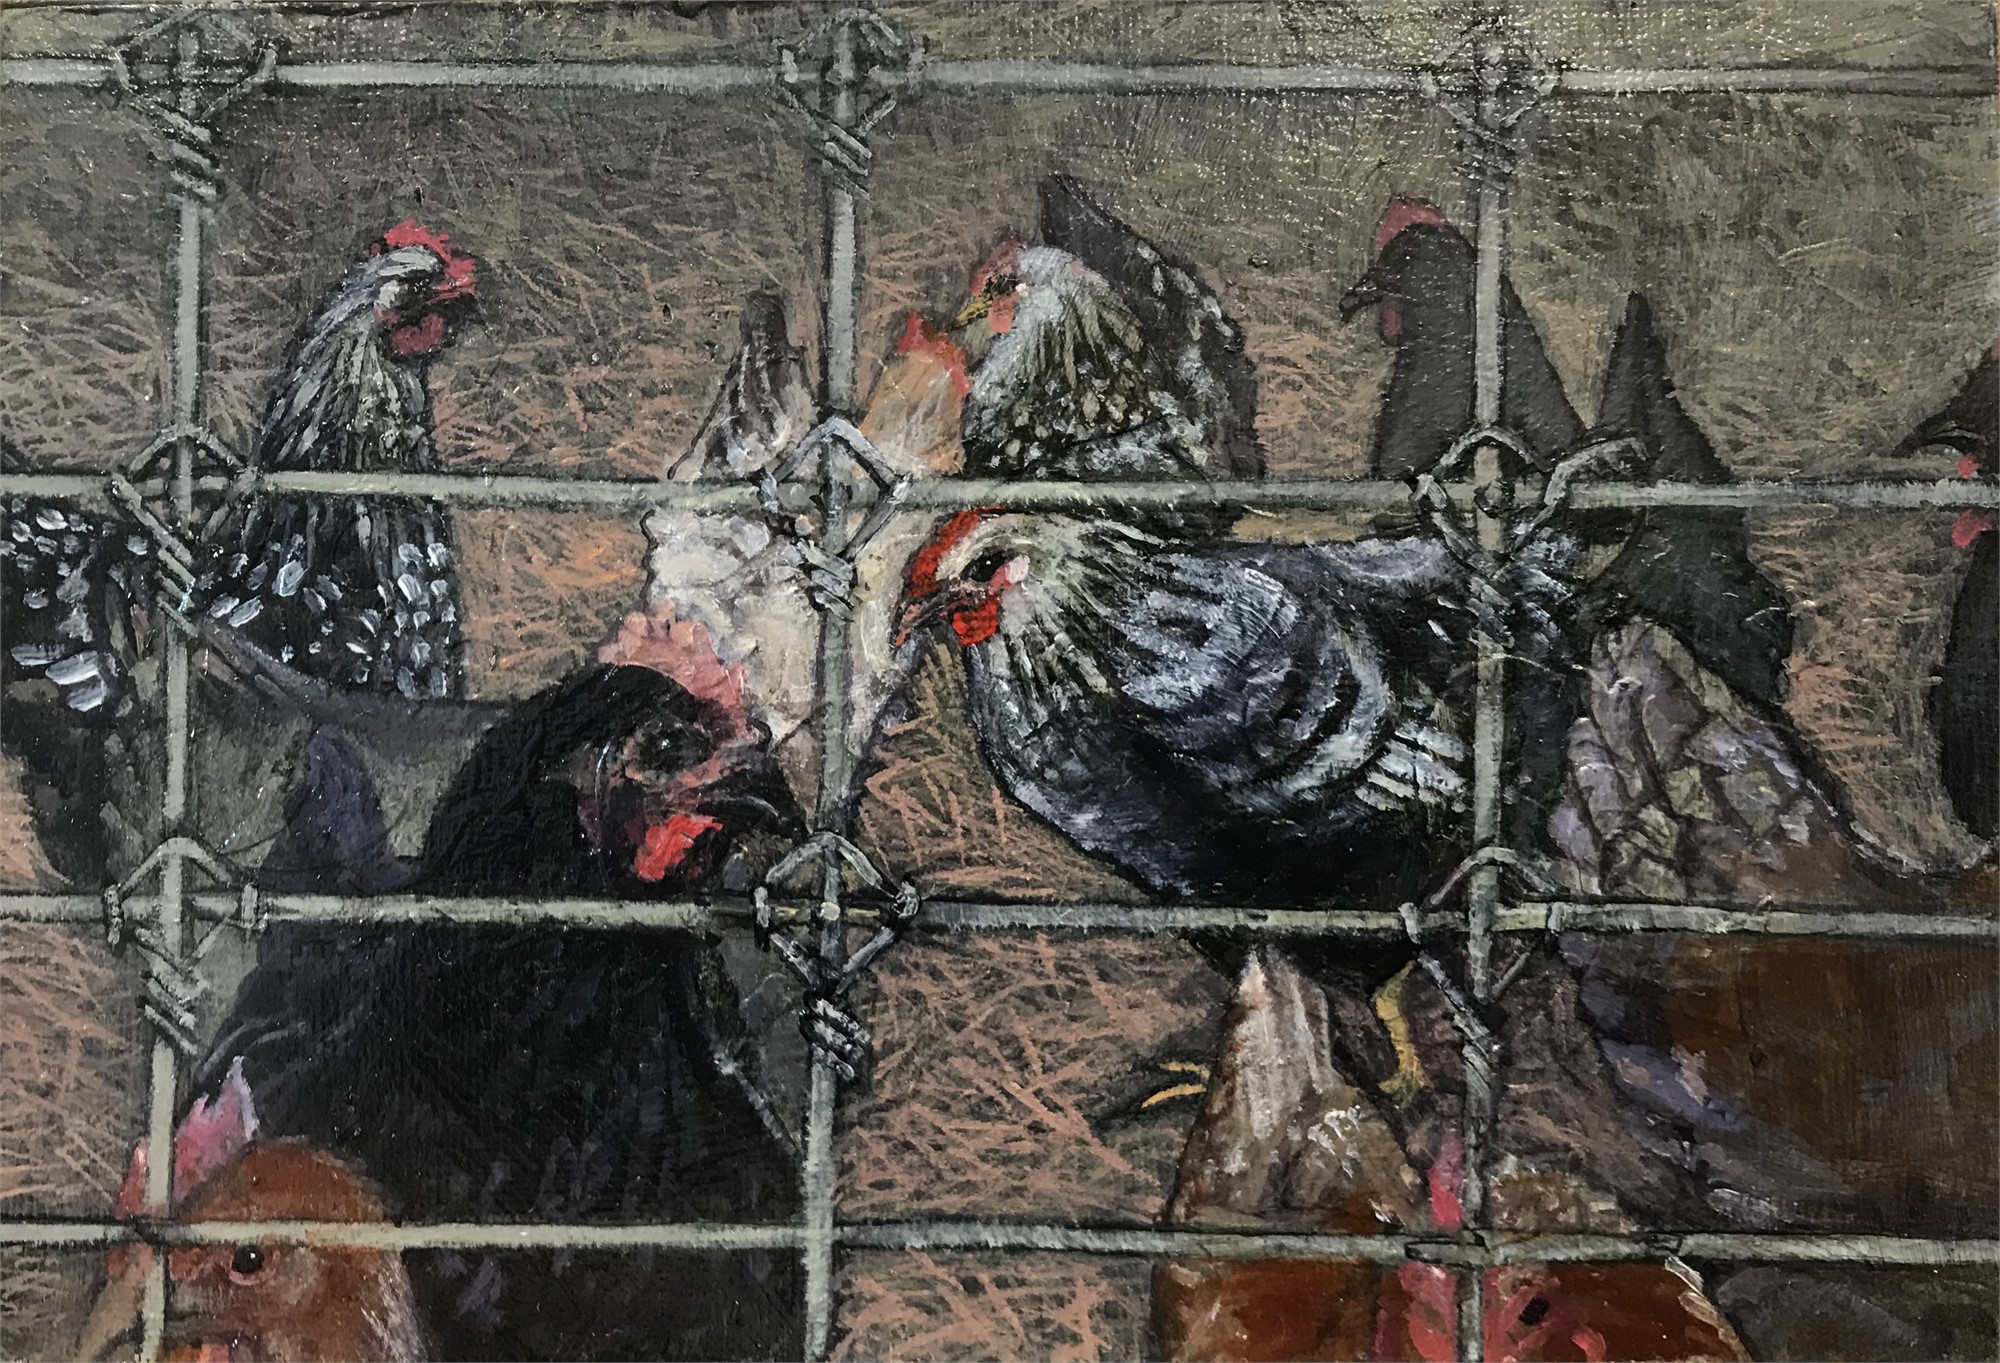 Chickens with Fence by Kris Engman | ArtCloud